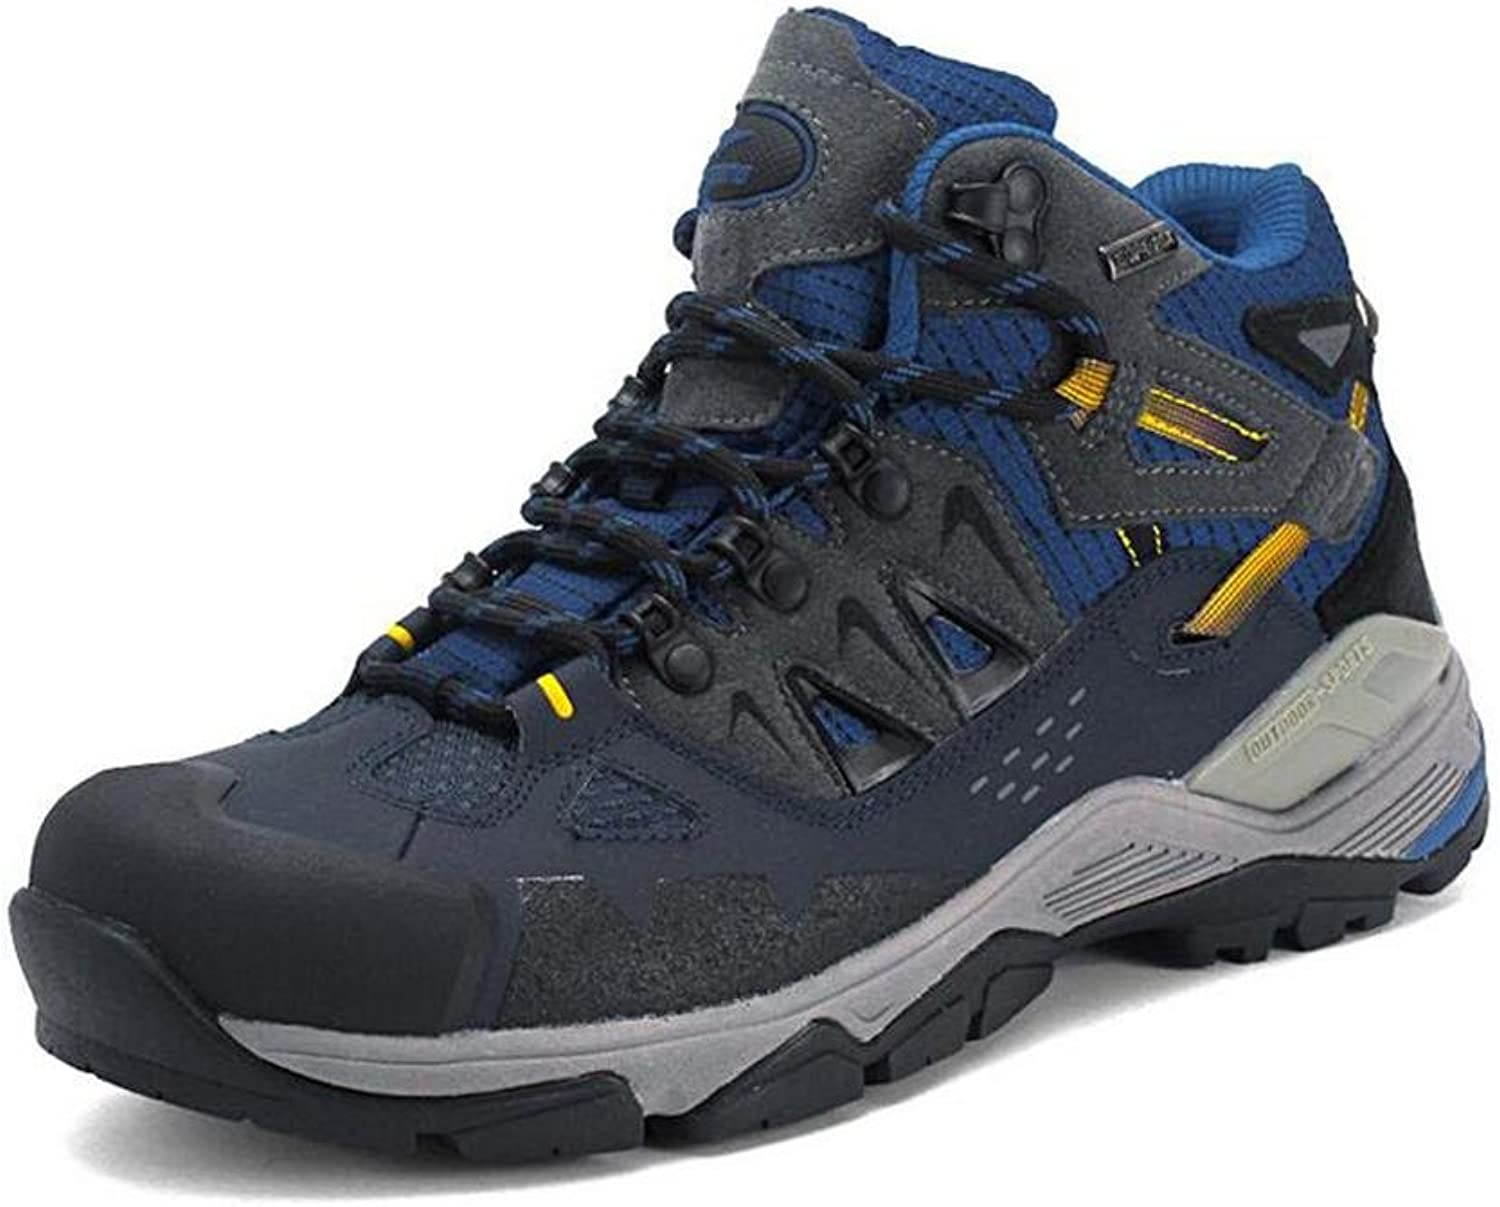 Mens spring outdoor hiking and climbing shoes durable non-slip breathable and comfortable to wear